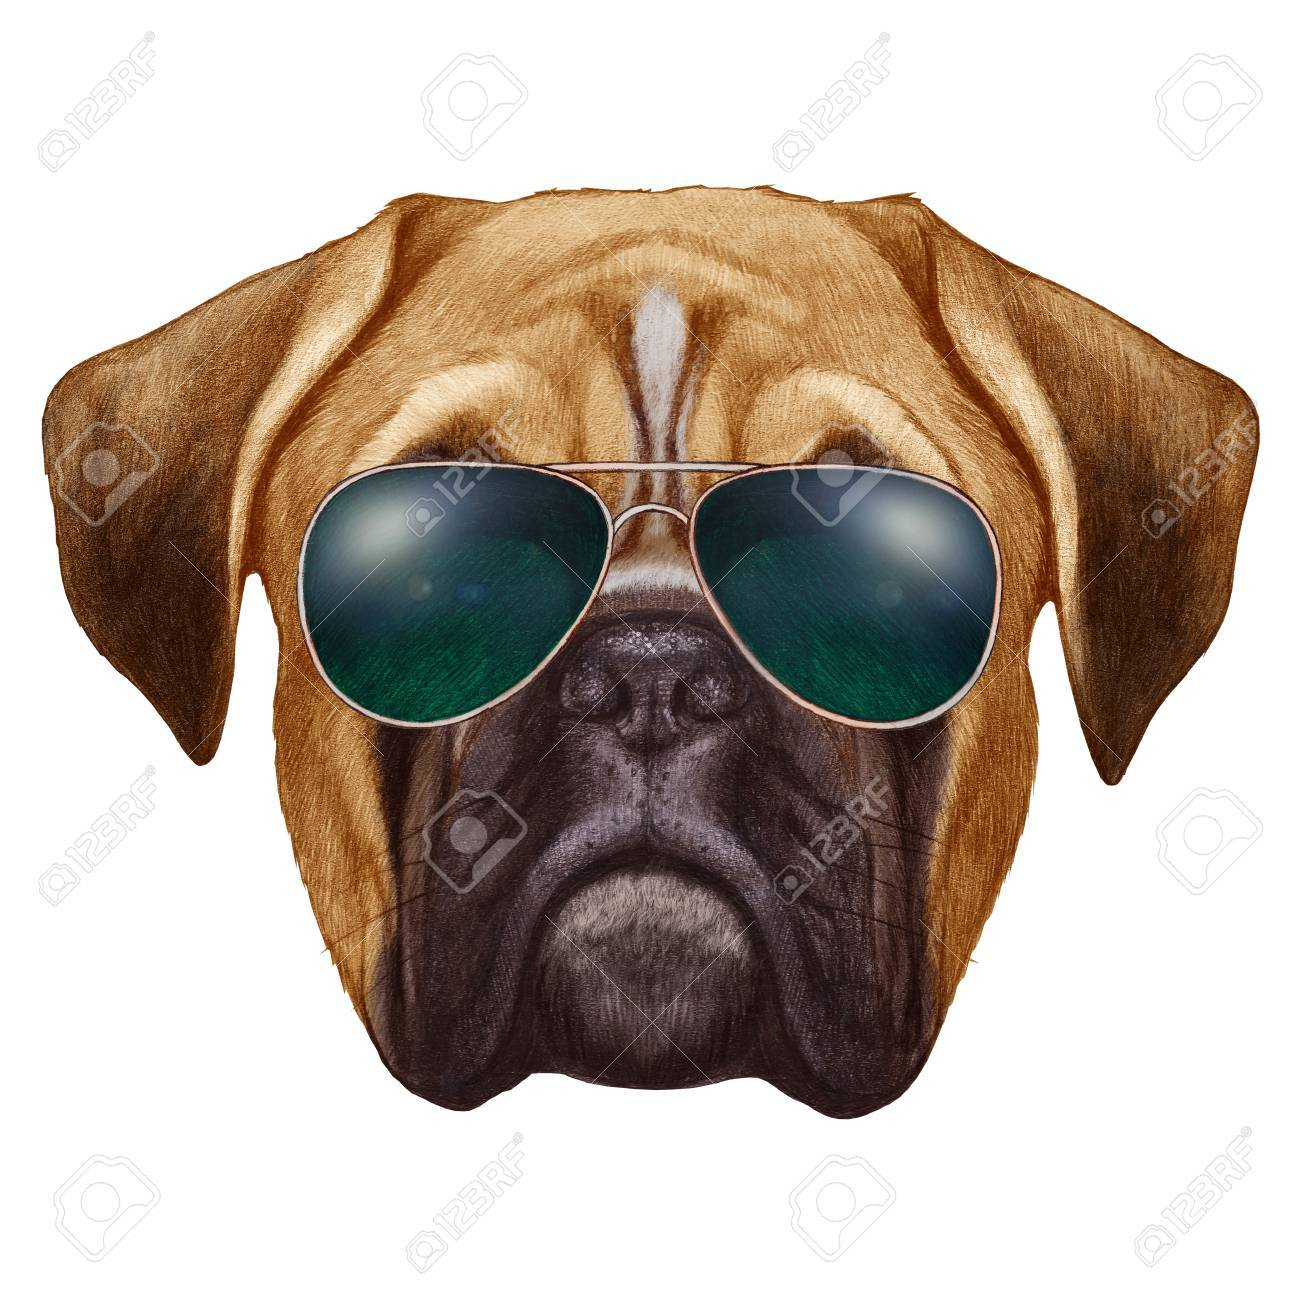 1300x1300 Original Drawing Of Boxer Dog With Sunglasses. Isolated On White